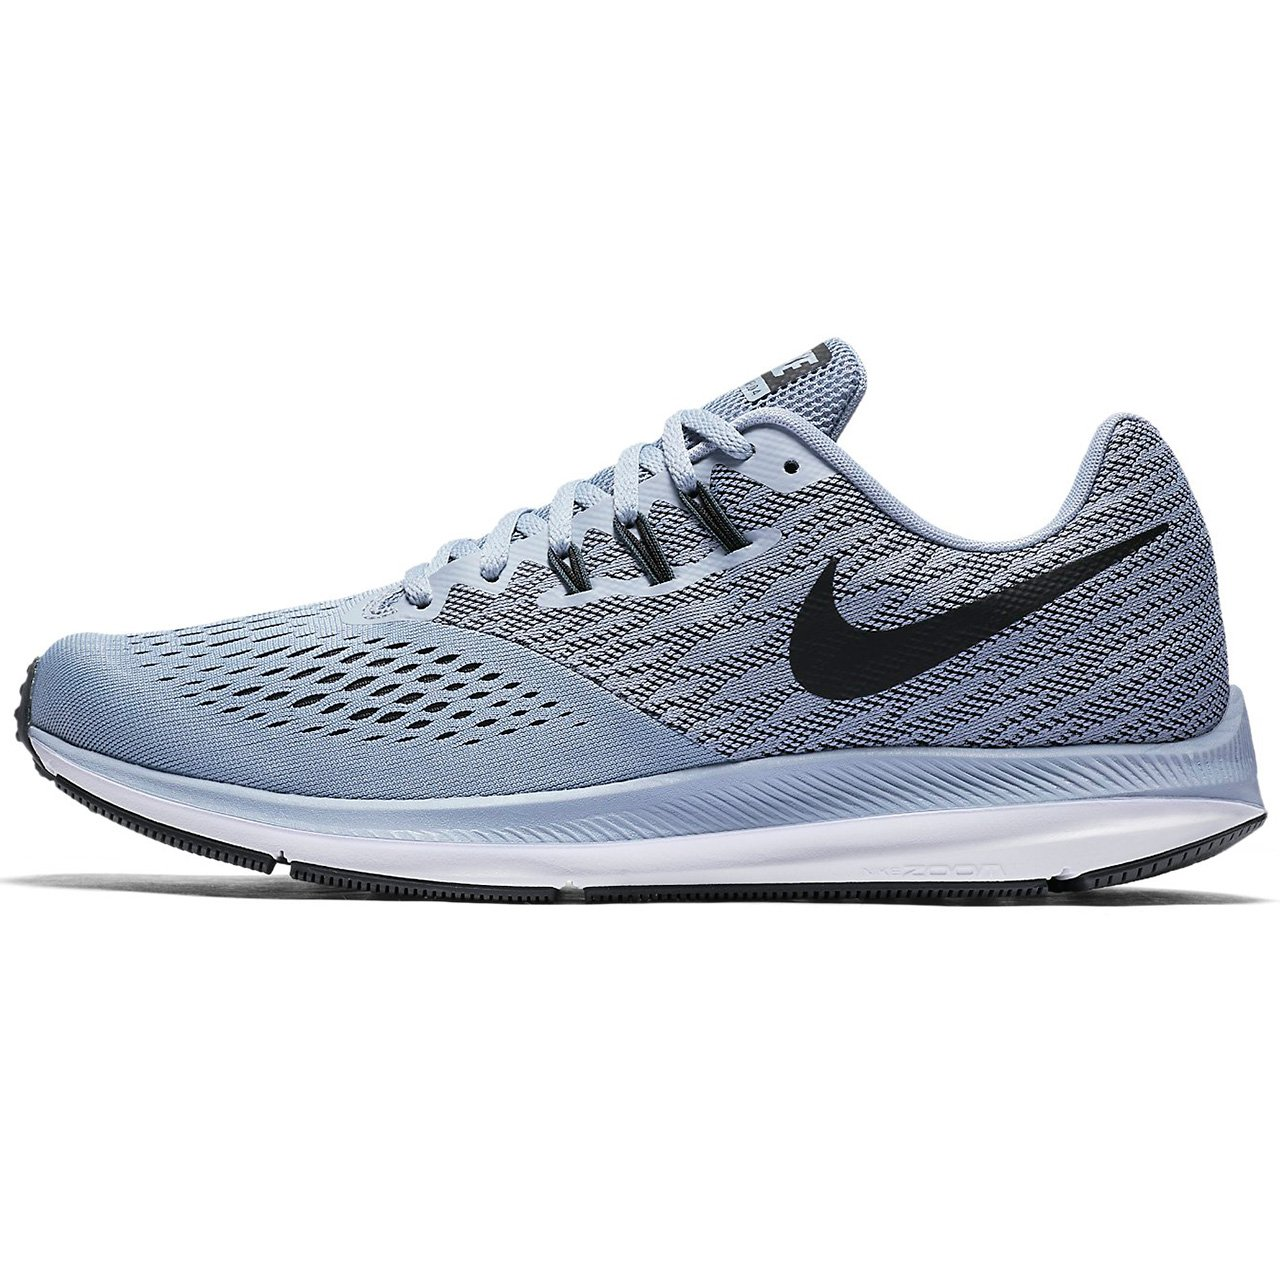 5506dd68e4b Galleon - NIKE Mens Zoom Winflo 4